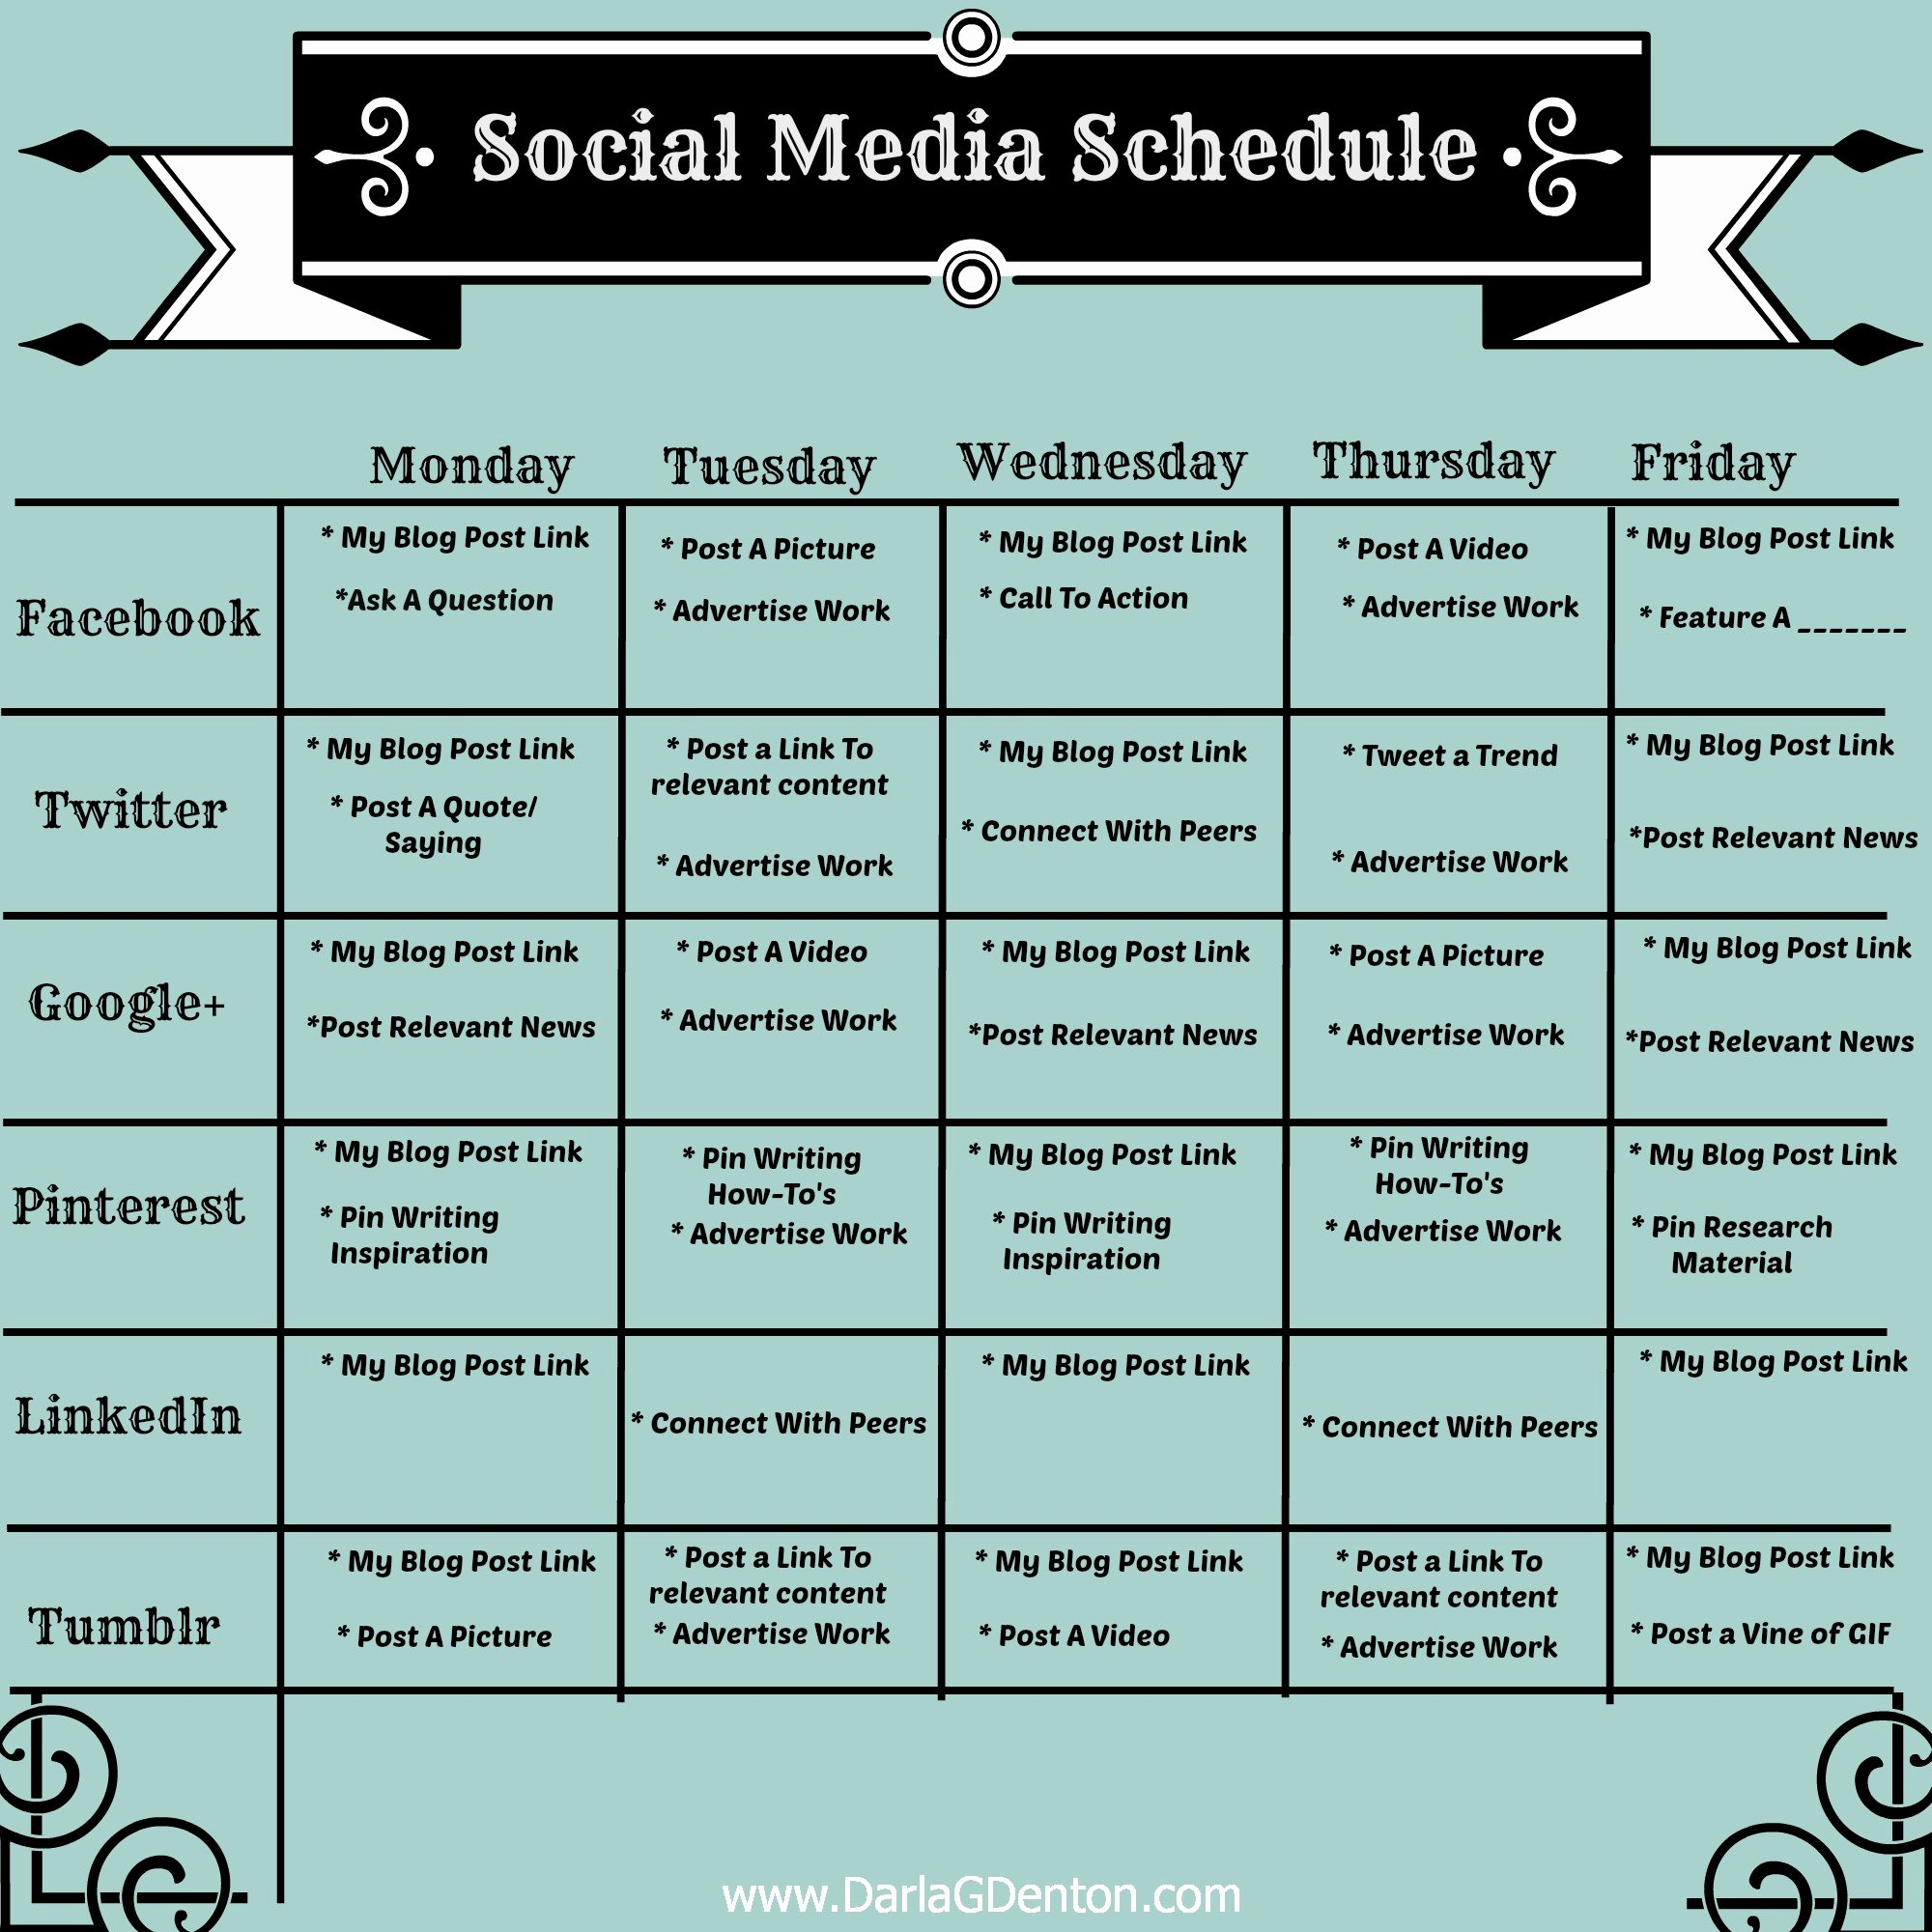 Social Media Posting Schedule Template Best Of Job Search Washington County Pa social Media Dashboards